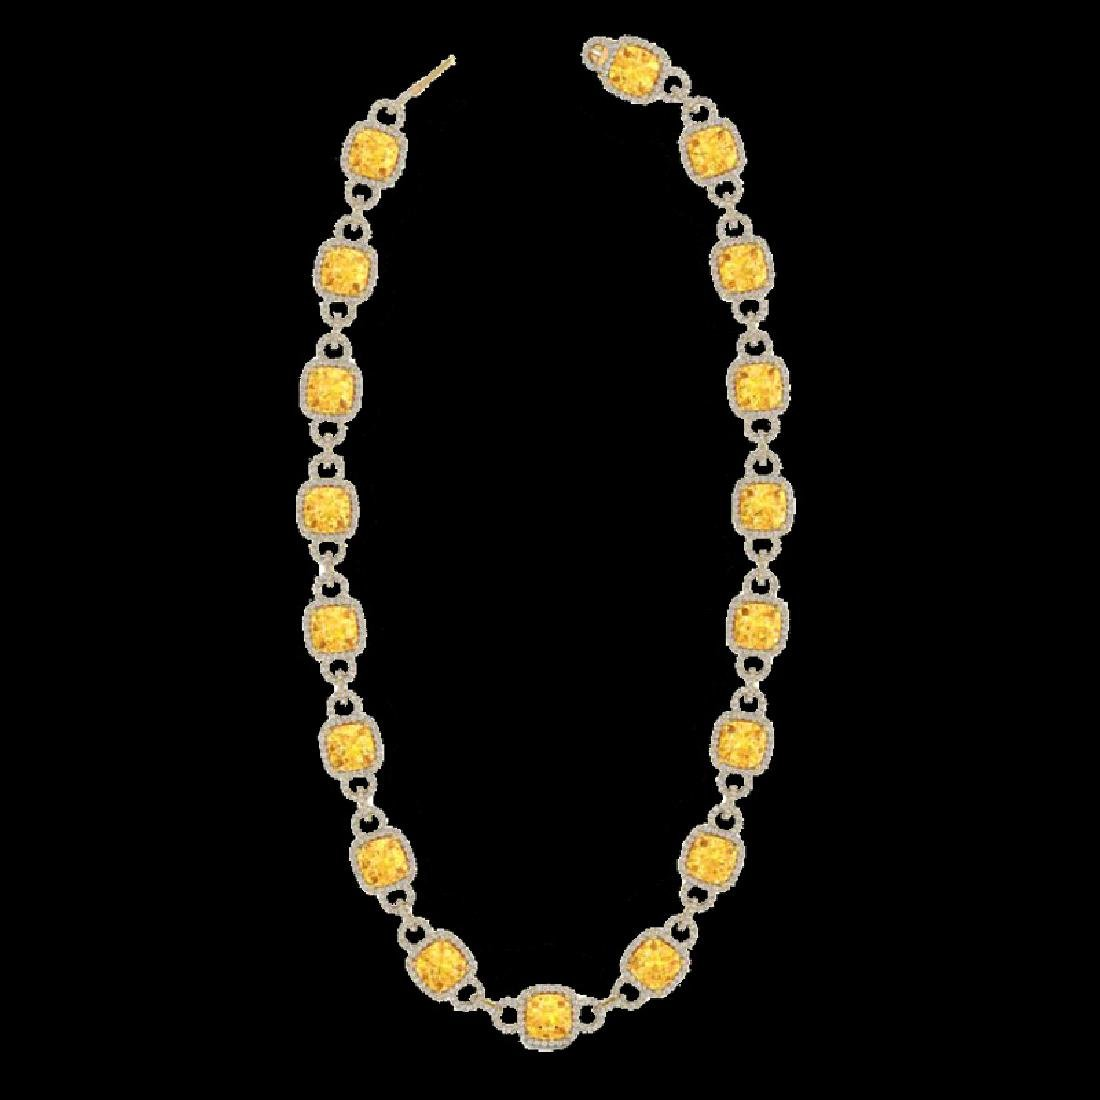 66 CTW Citrine & Micro VS/SI Diamond Eternity Necklace - 2